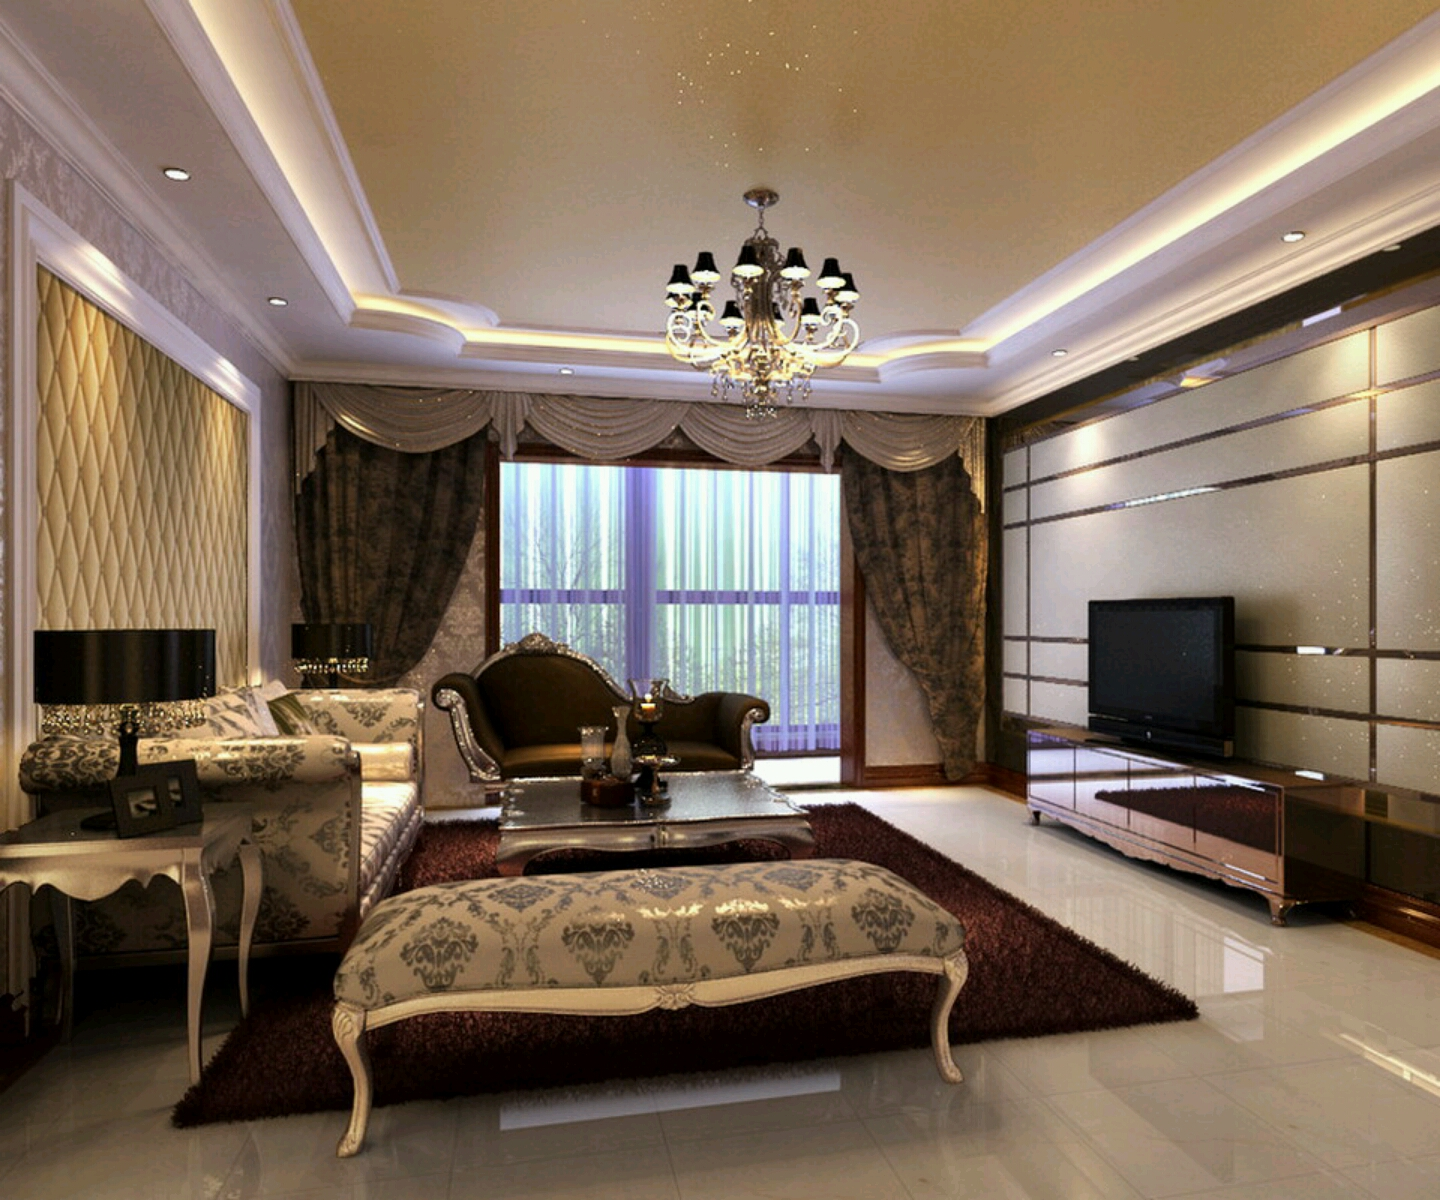 New home designs latest luxury homes interior decoration living room designs ideas Home ideas